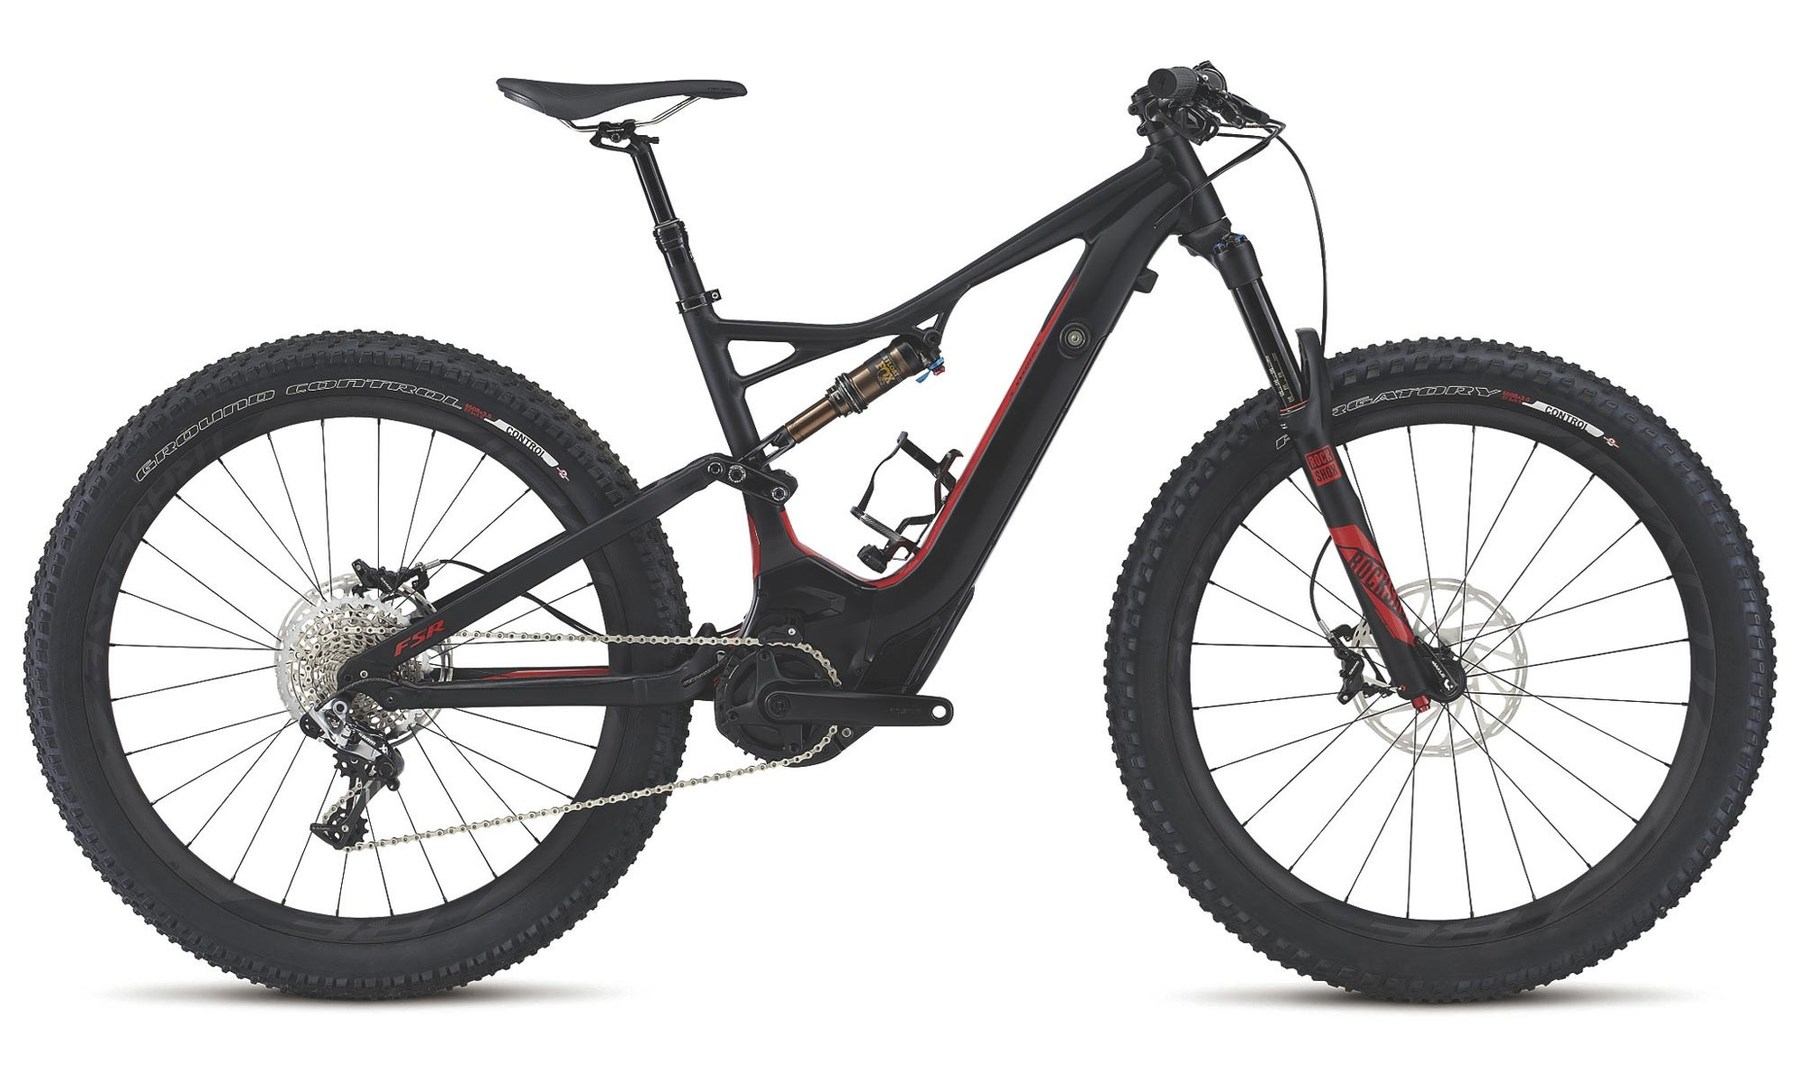 Specialized Turbo Electric Bike >> Bicicleta eléctrica Specialized 2016: S-works, Expert ...